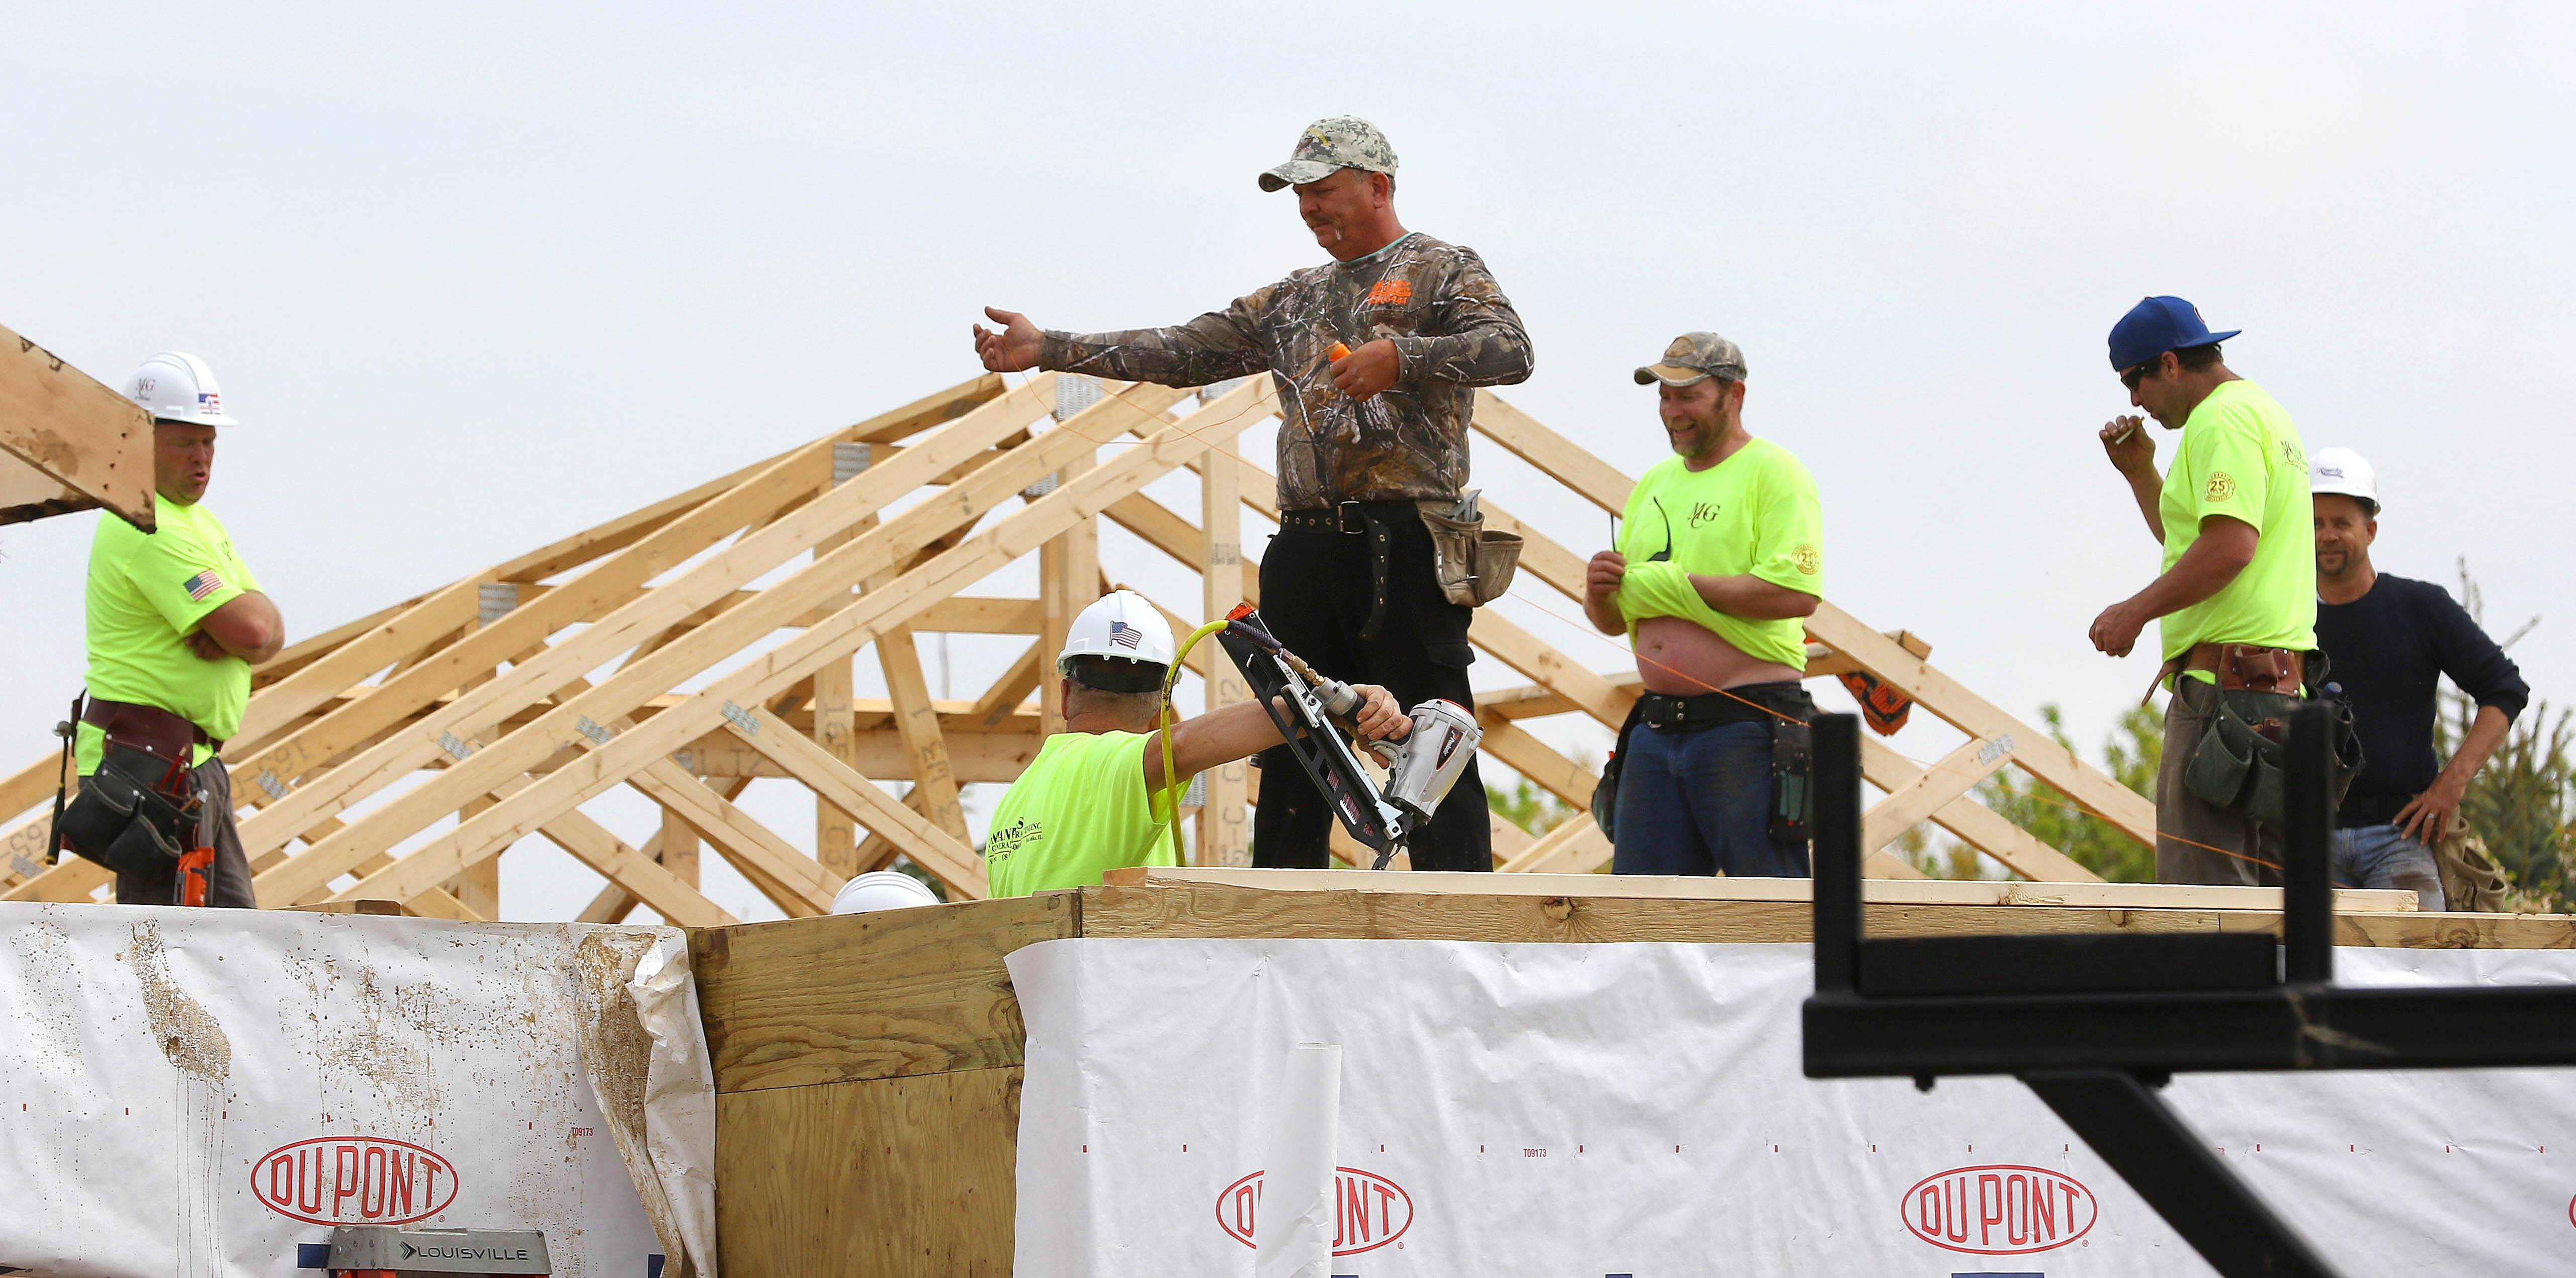 At least 85 volunteers from 16 states are expected to participate in construction of a house in Spring Grove for Army veteran Tony Chobanov of Naperville. The work started Thursday.